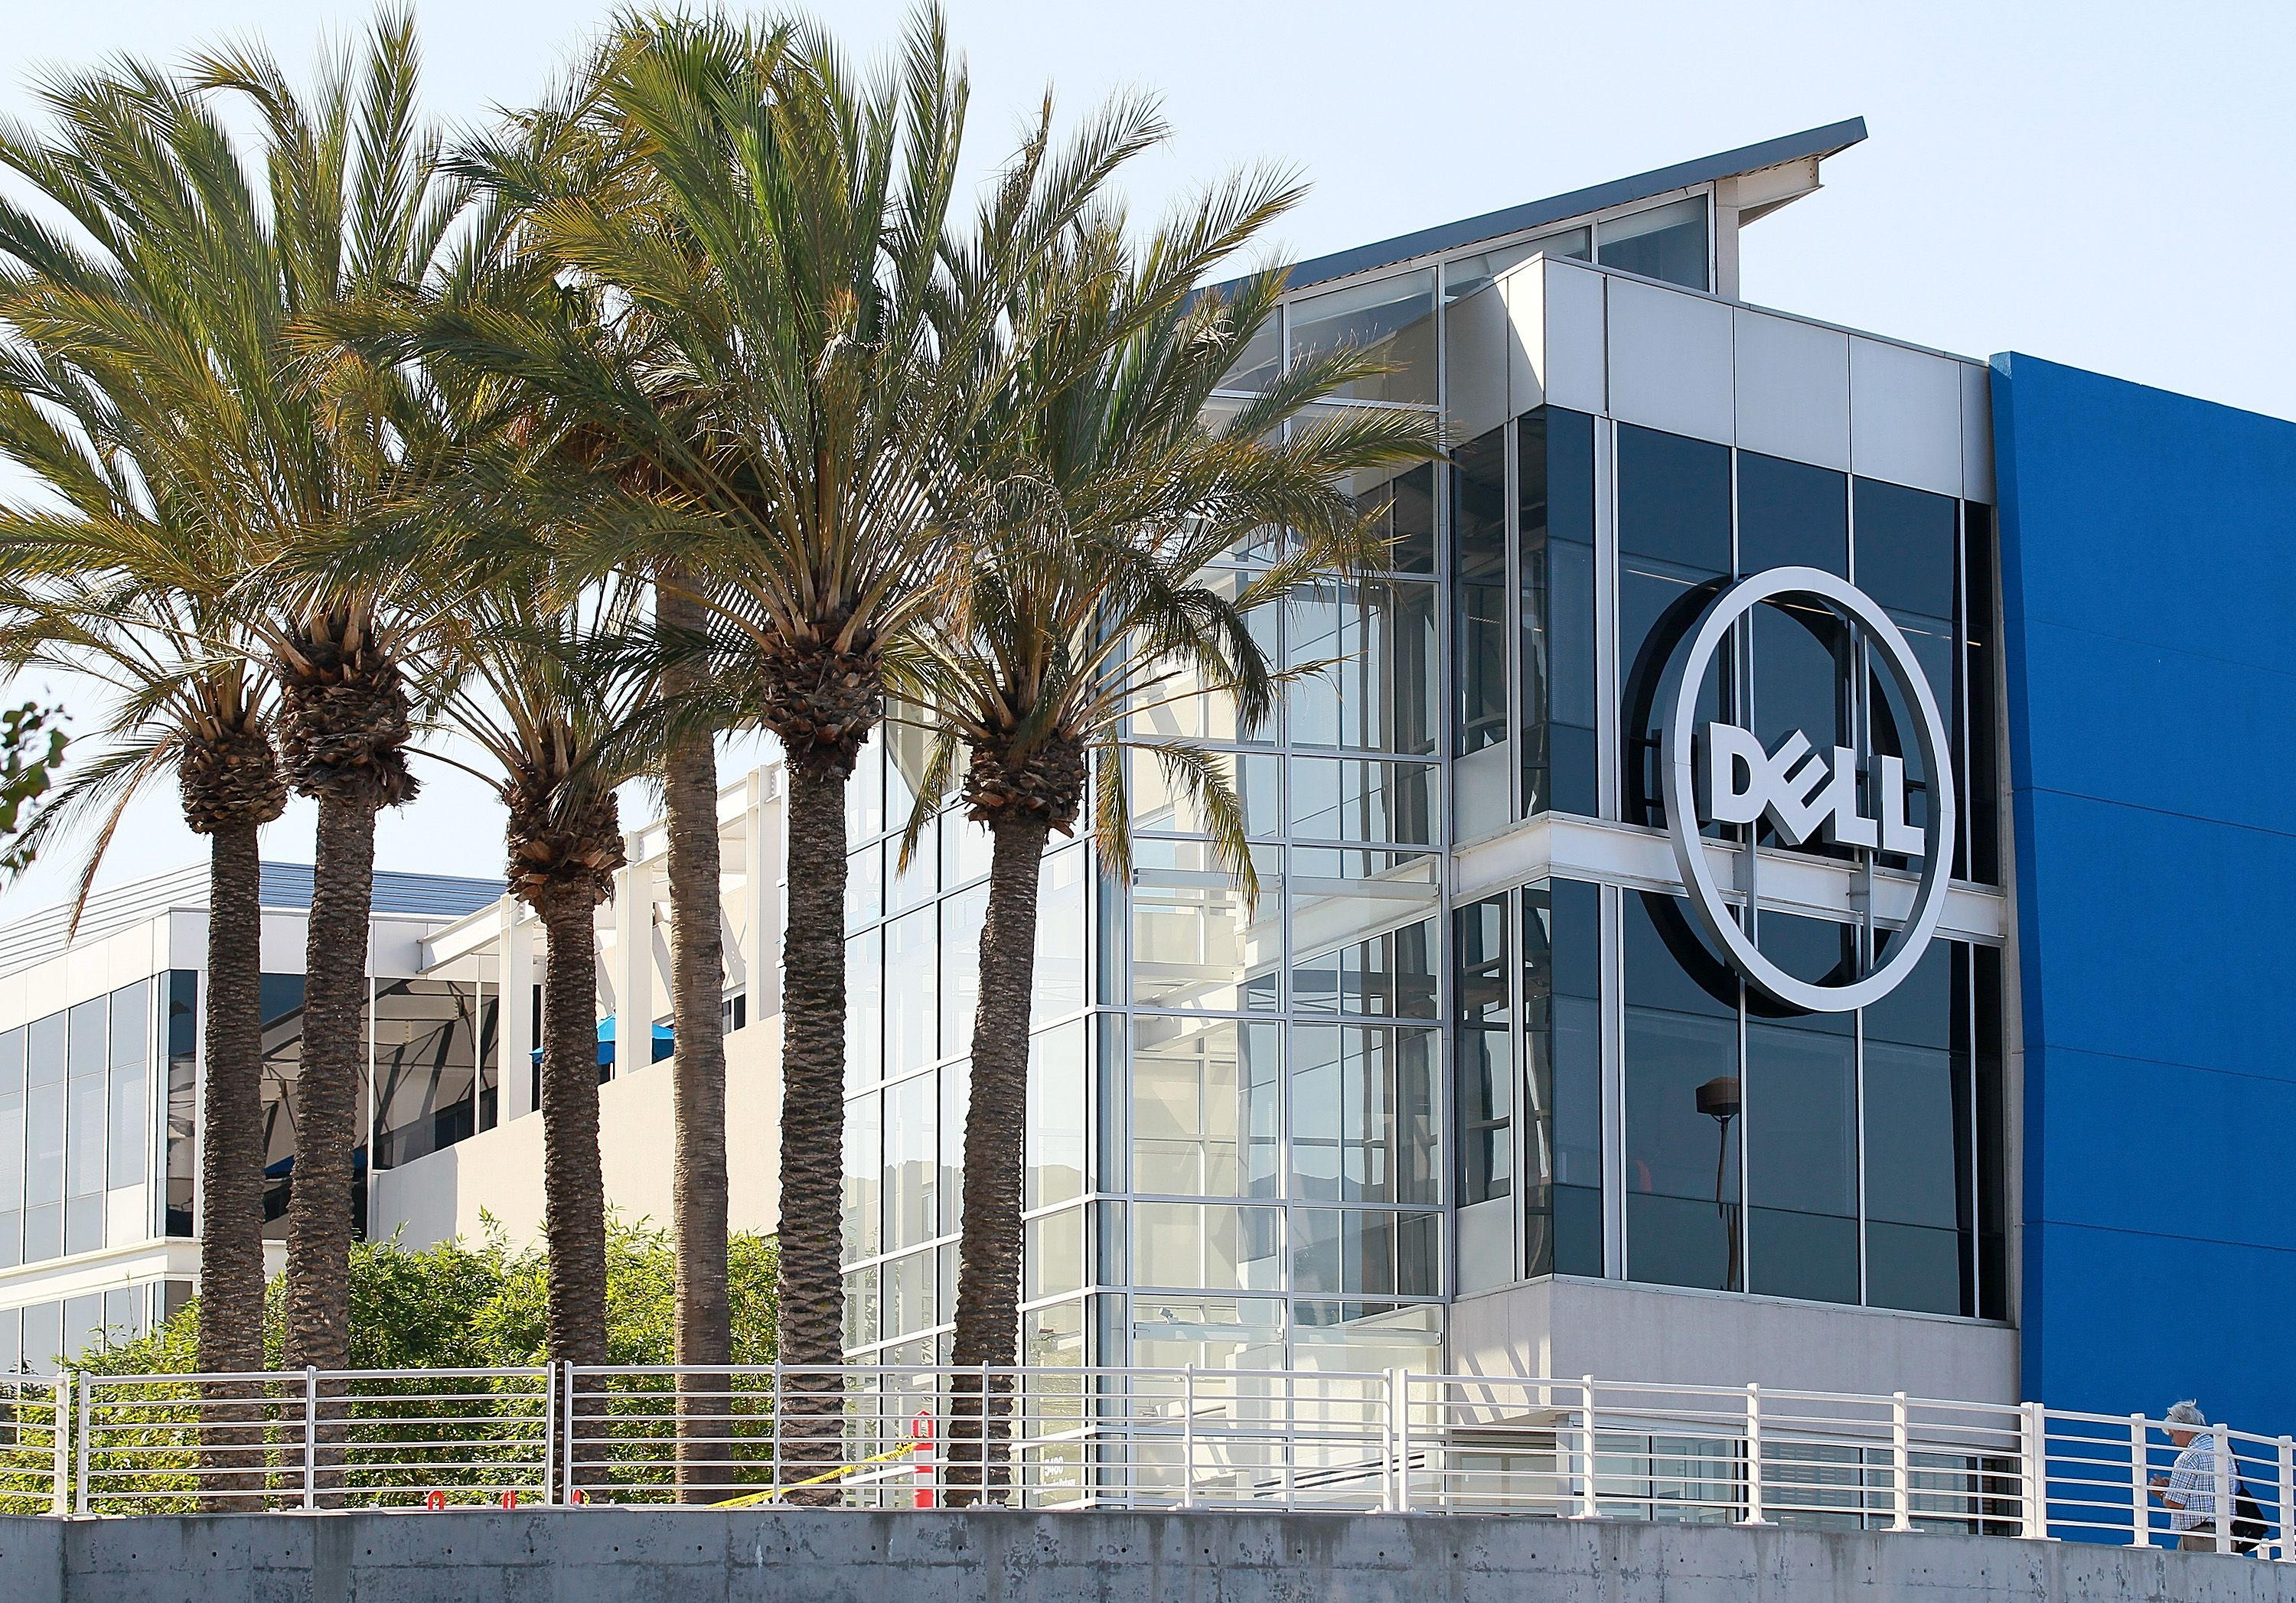 How Dell found its way and transformed with the changing times